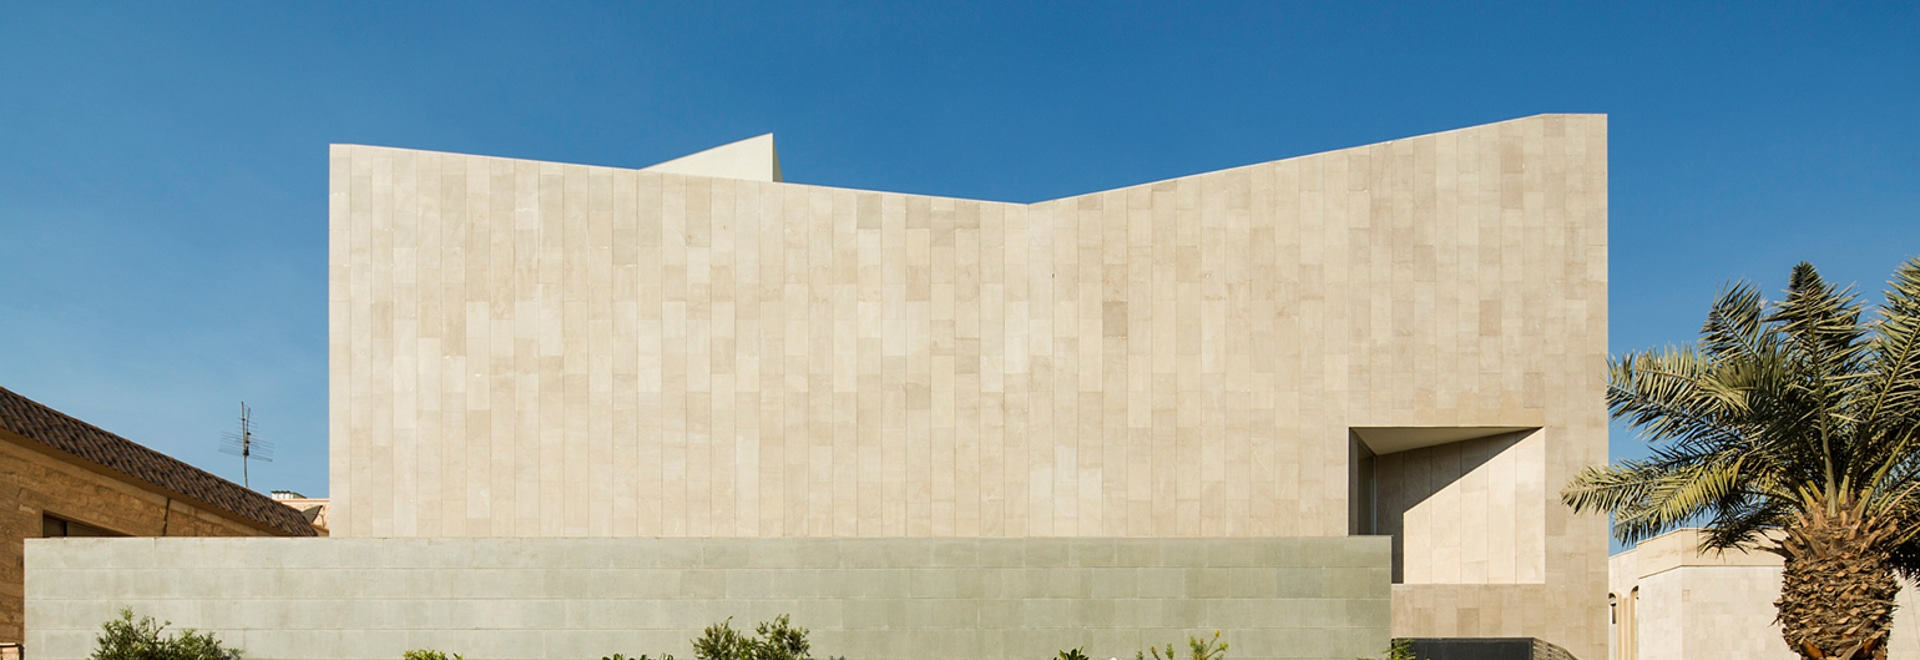 The Wall House by AGi architects is a new, stone-clad family home, located in the suburbs of Kuwait City